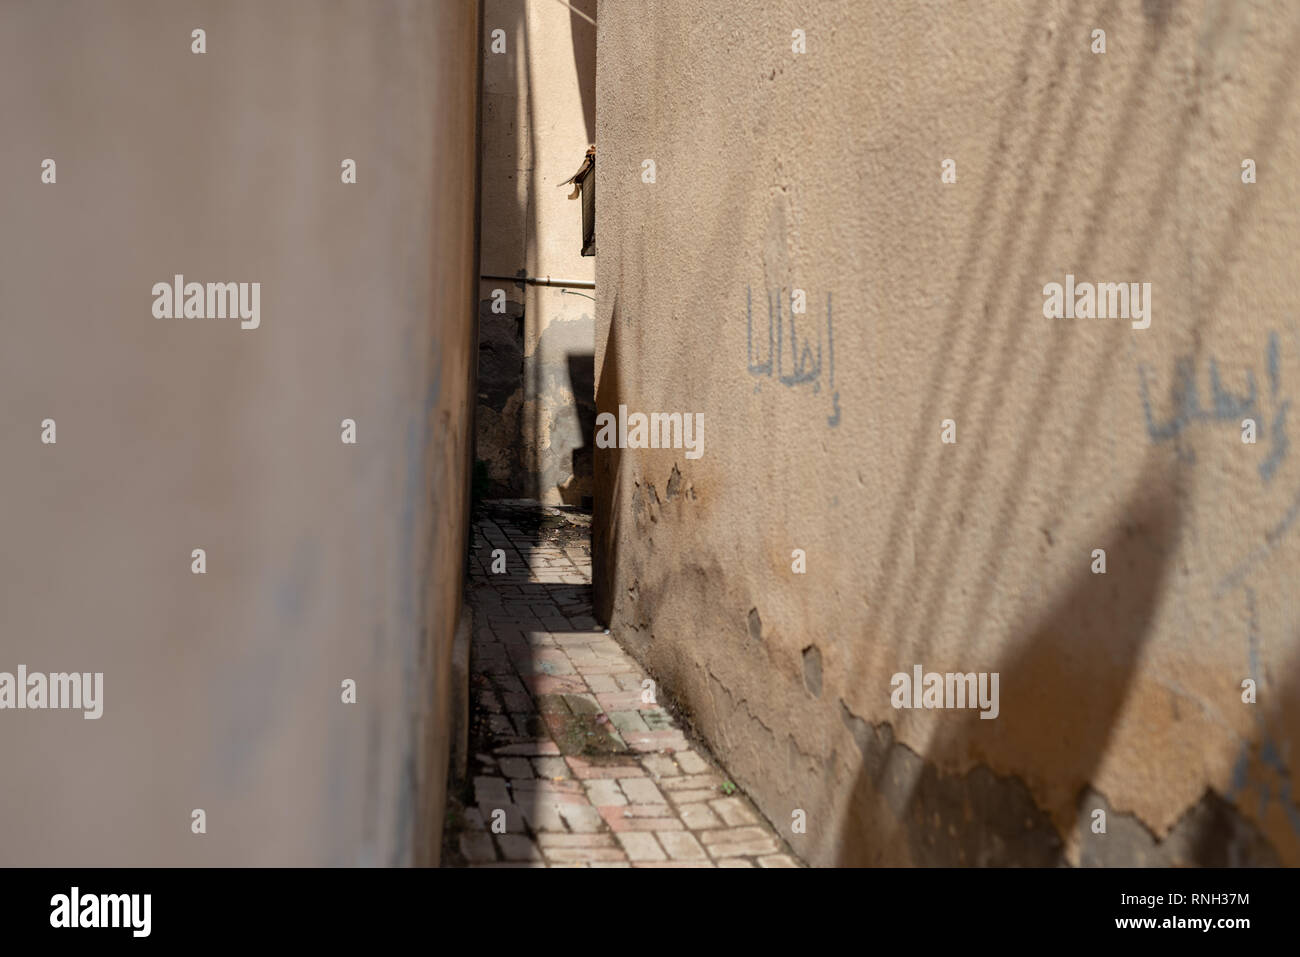 Narrow lane with graphitis in the historical district of Matrah, City of Muscat, Sultanate of Oman. - Stock Image